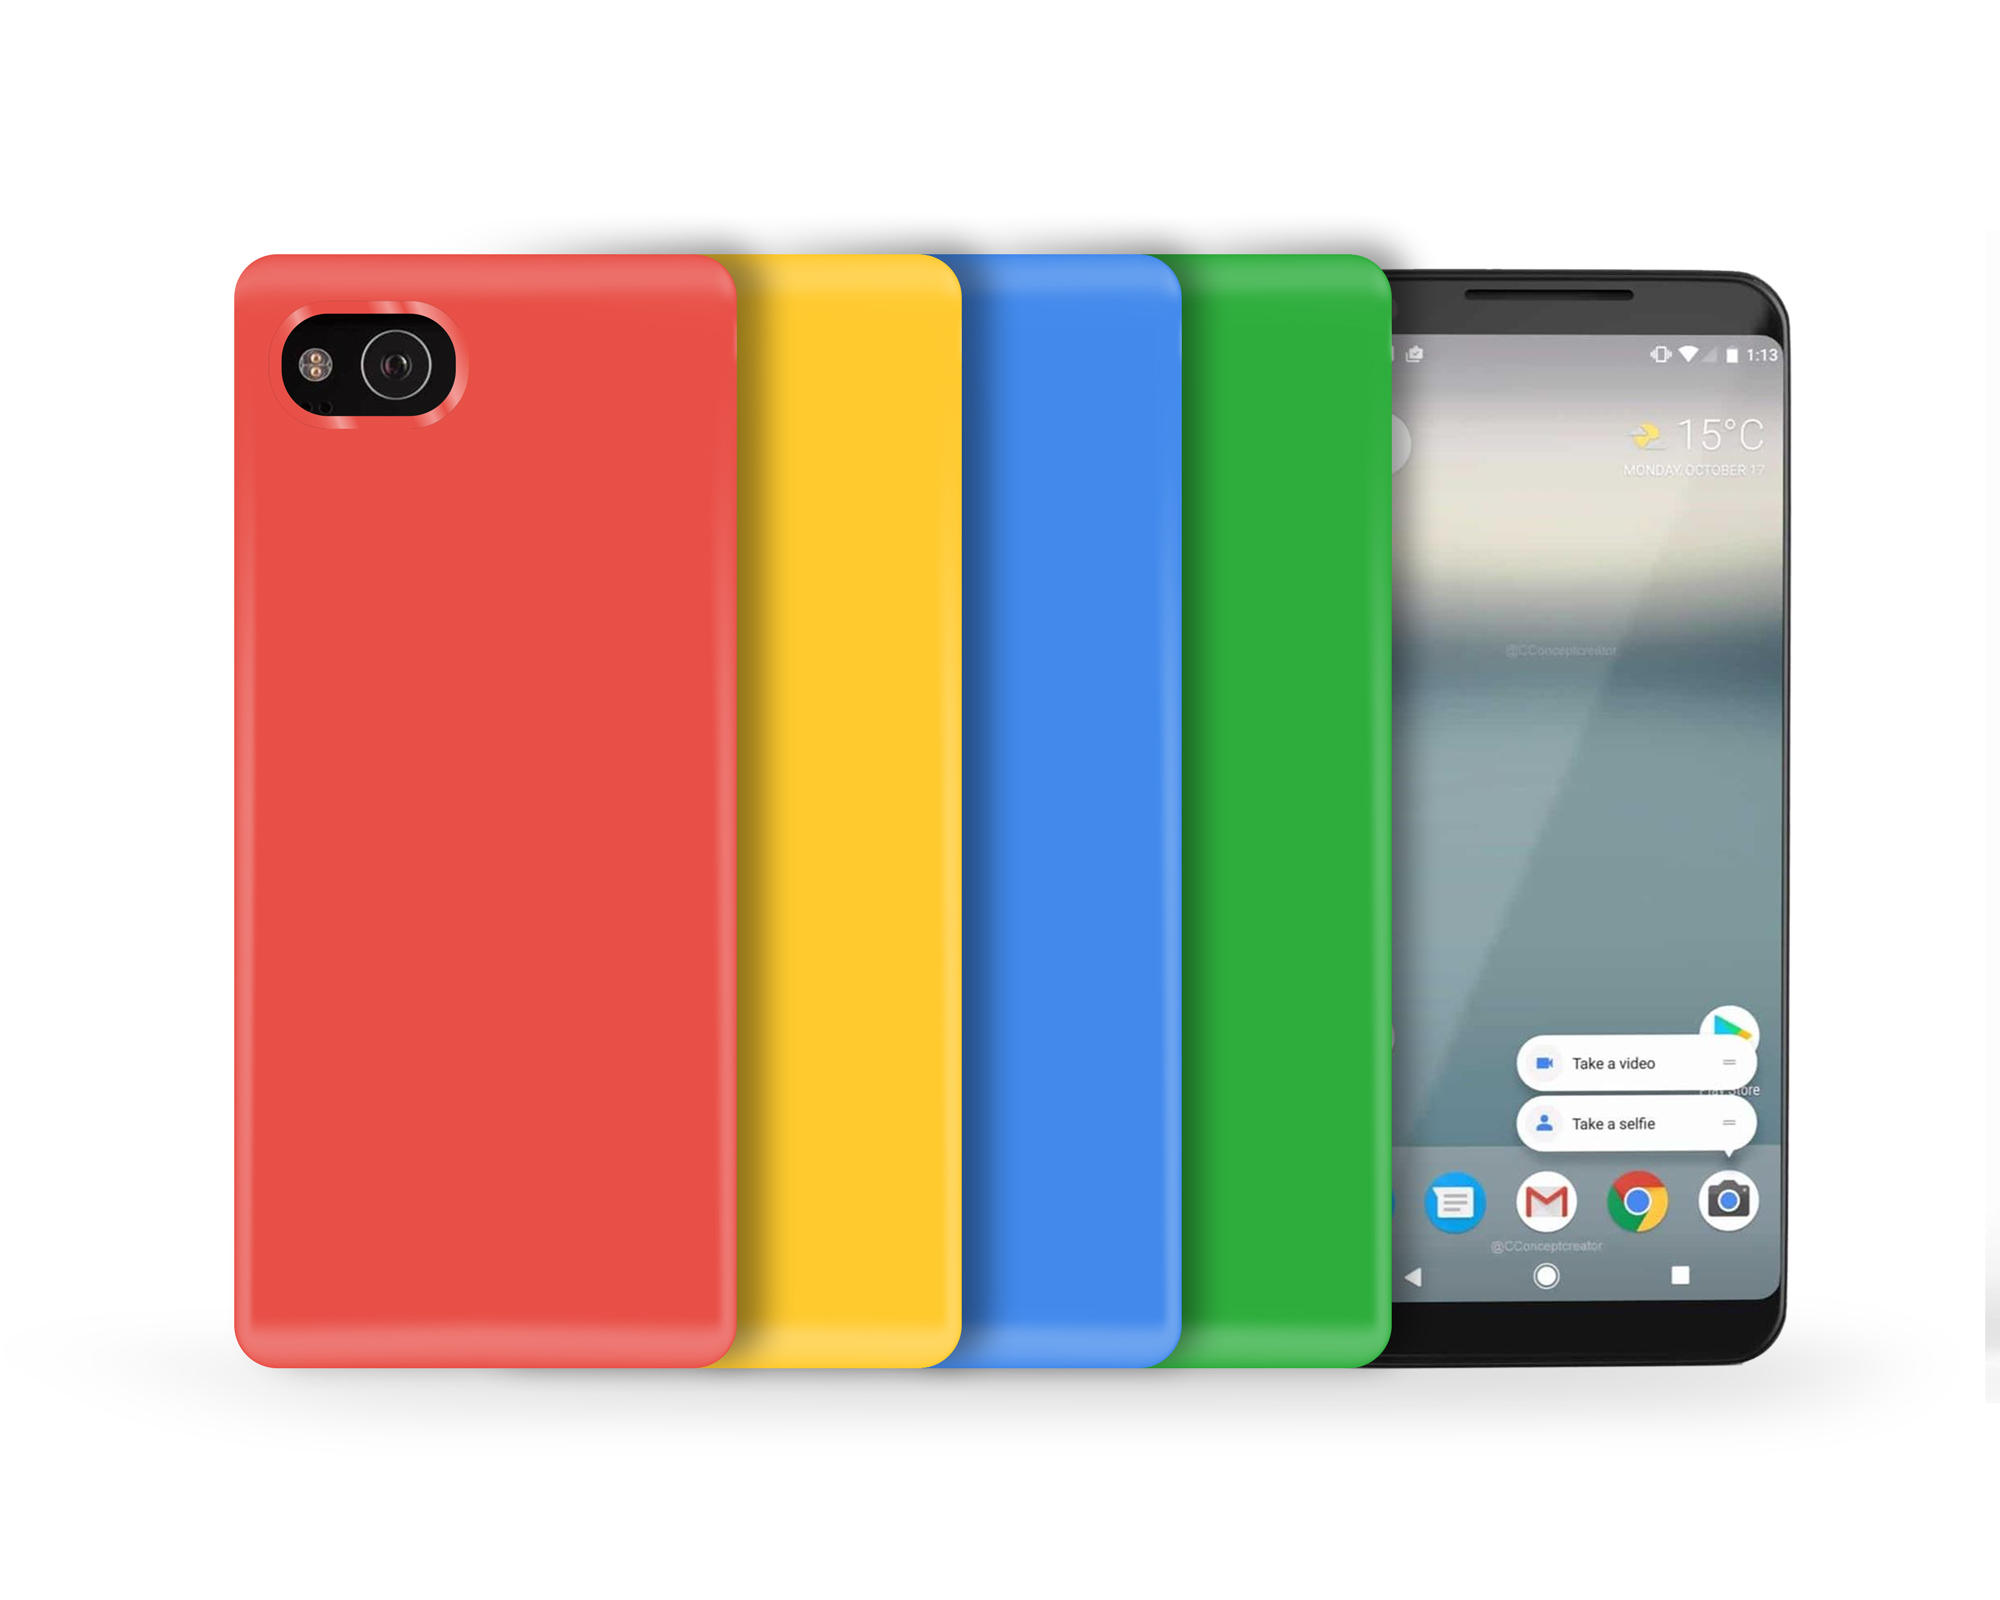 2-sword-back-view-of-various-colors-of-mobile-scanning-case